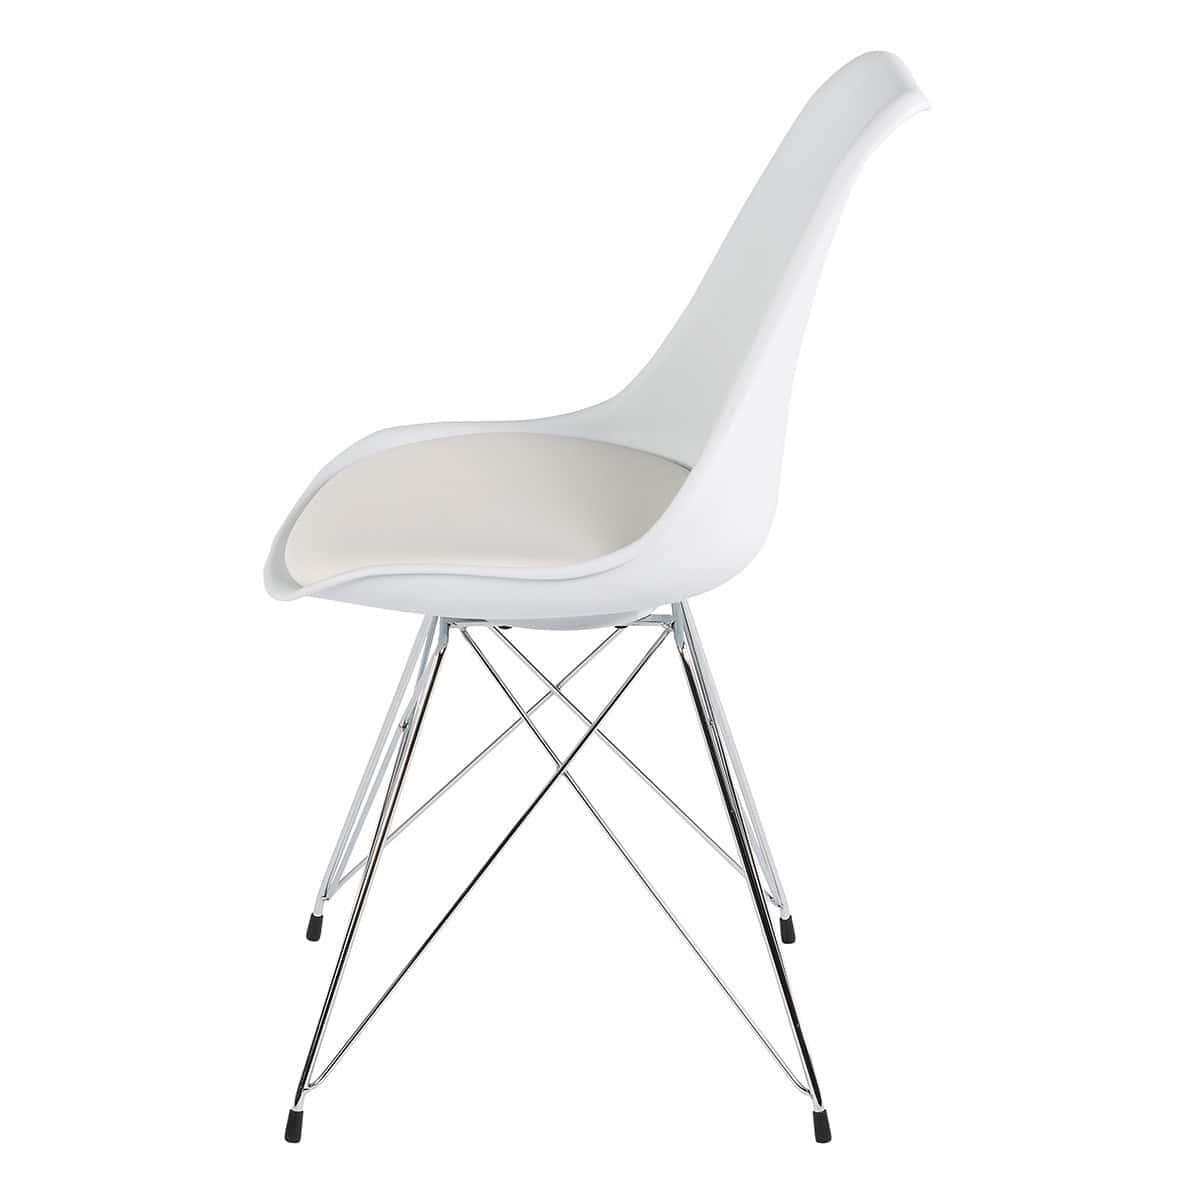 SET OF 2 Replica Eames DSR Chrome Eiffel Chair - White